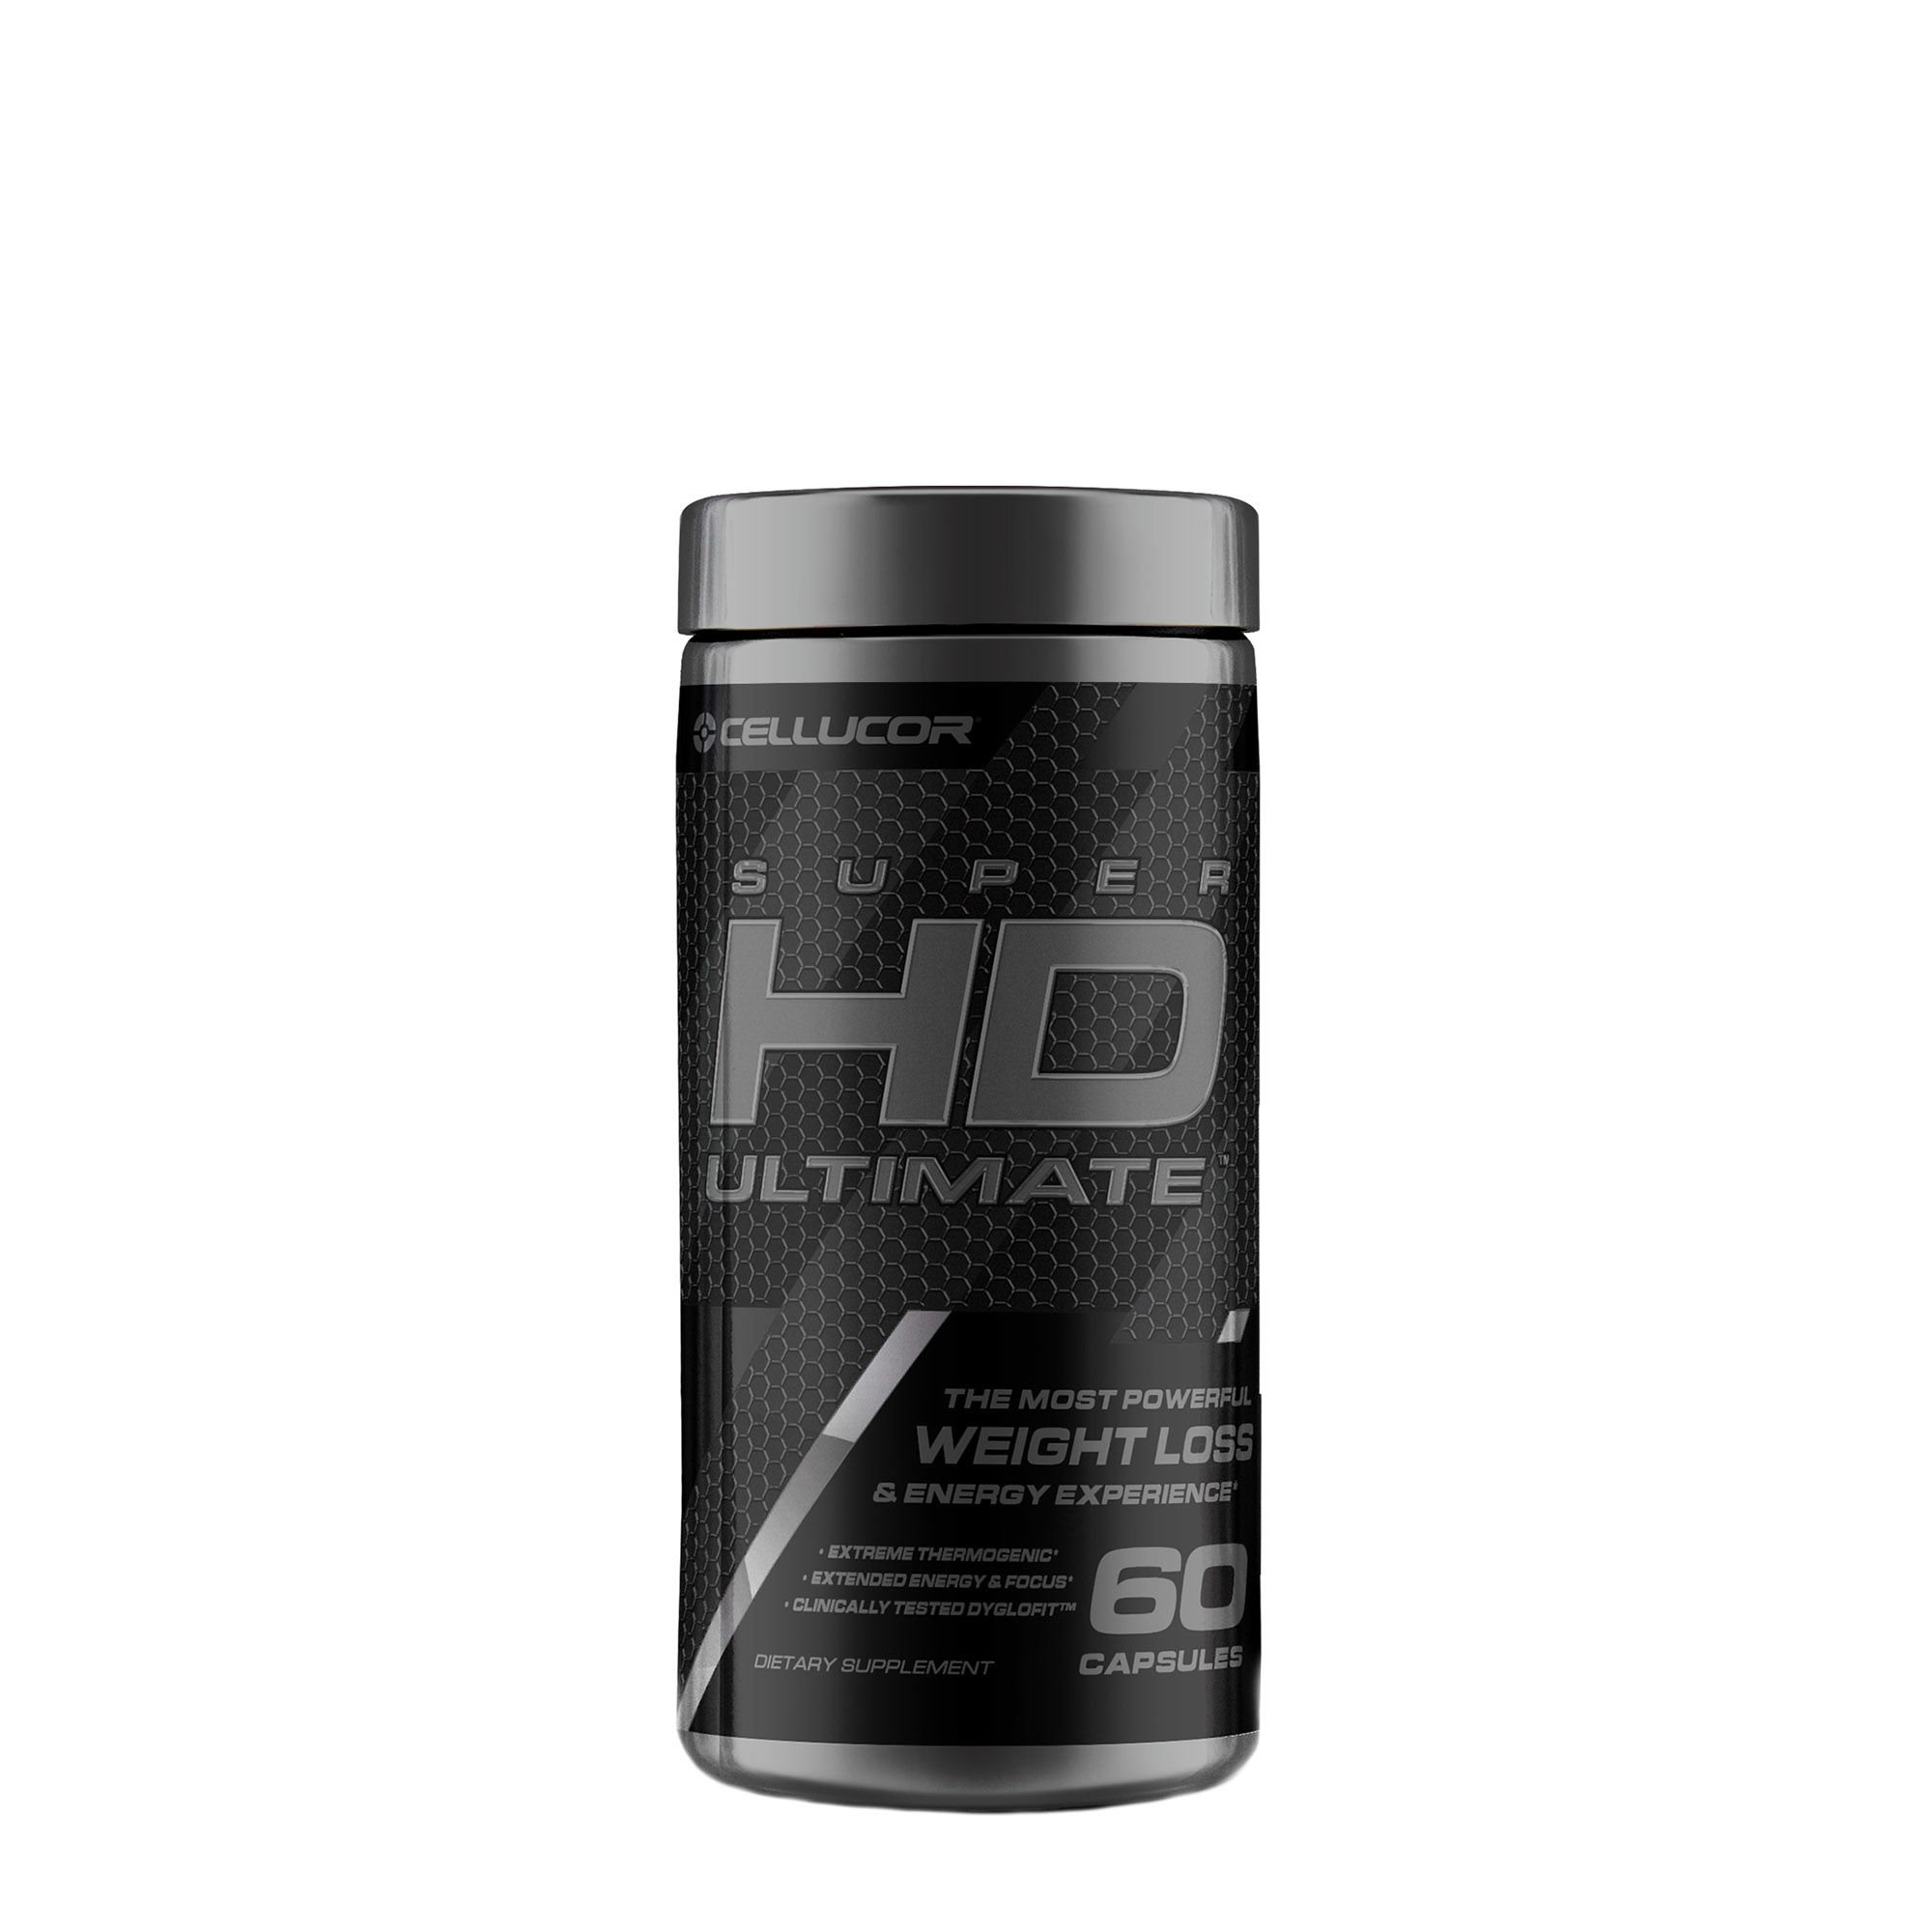 Cellucor, SuperHD Ultimate, The Most Powerful Weight Loss & Energy Experience, 60 Count